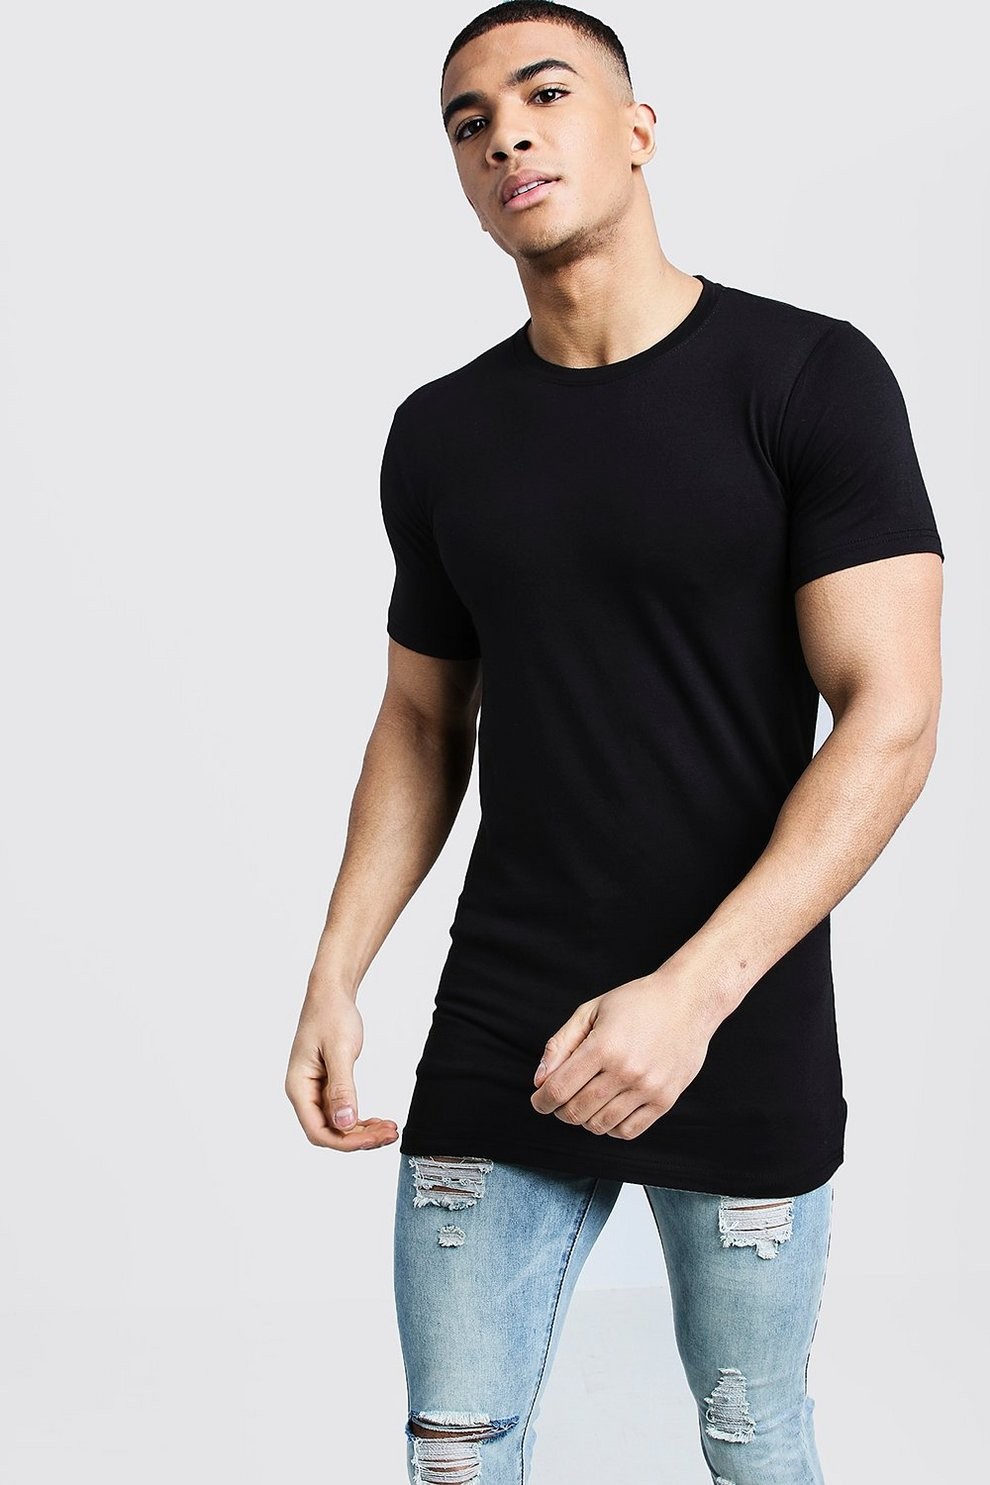 Shirt Long Fit T Muscle Ultra PuZkOXiT